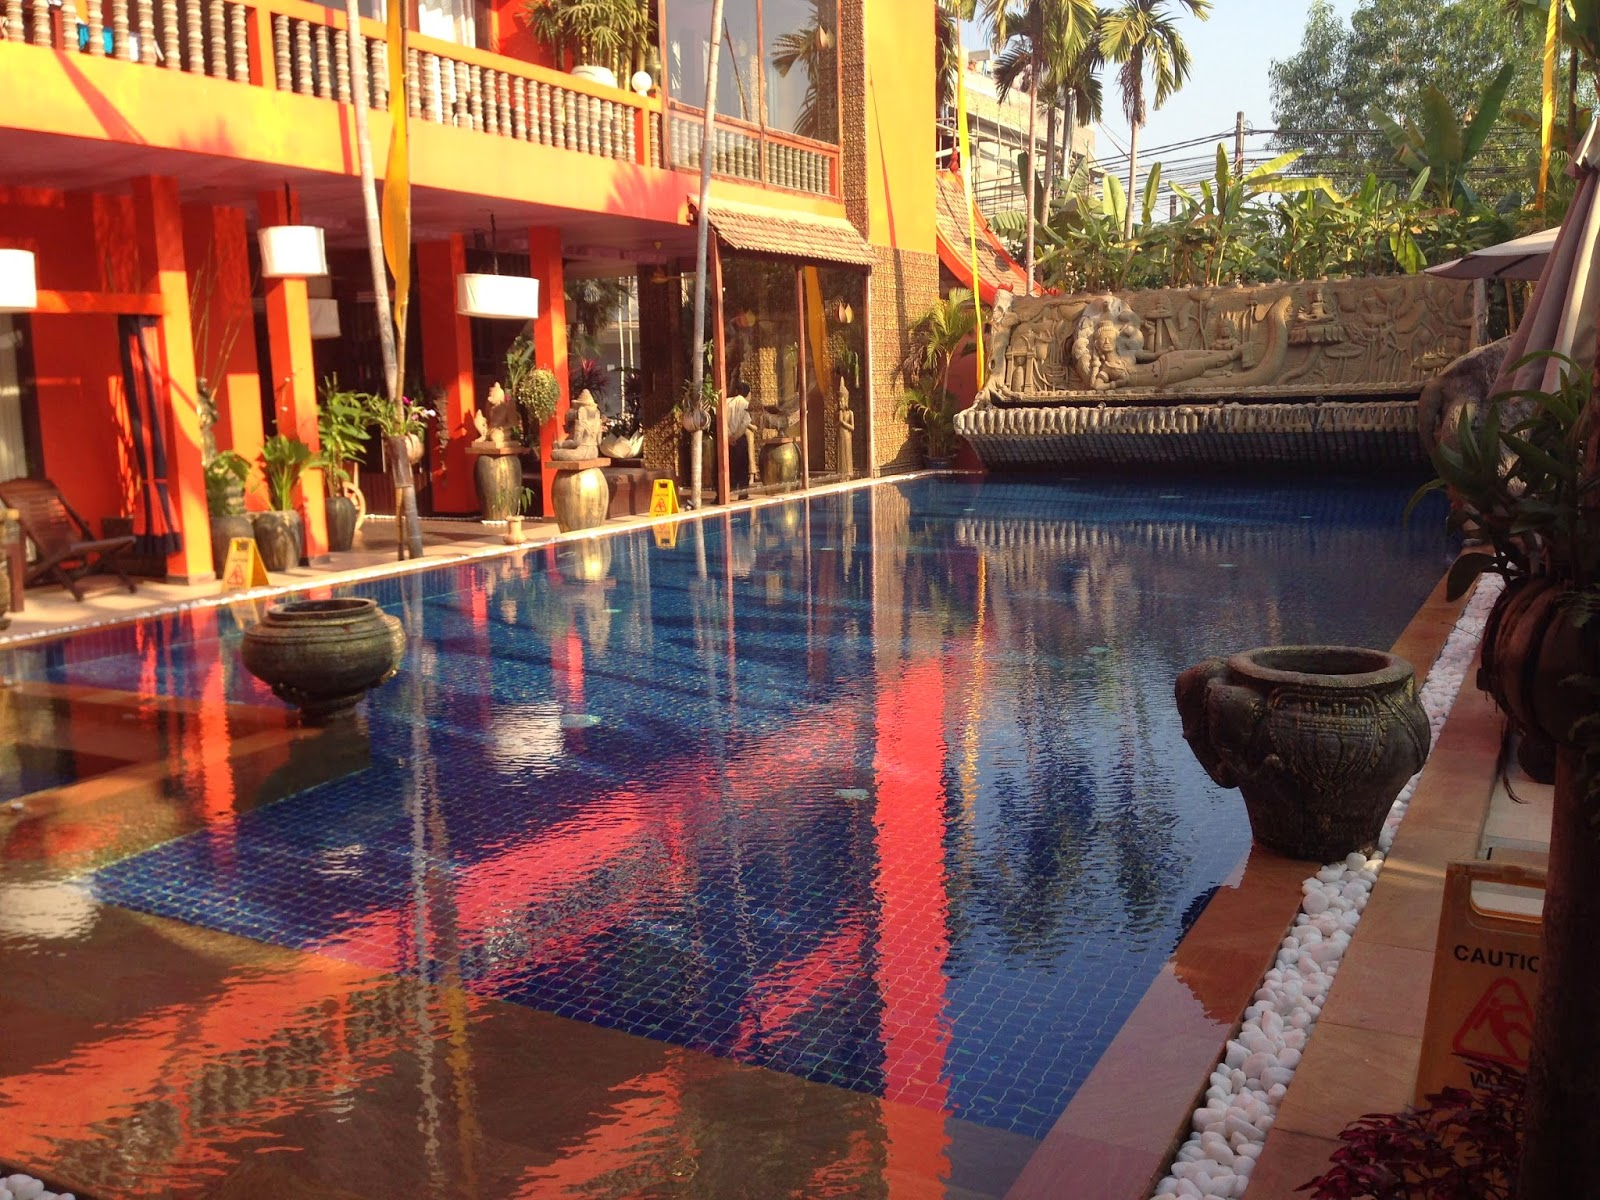 Golden-Temple-Hotel-Siem-Reap-Cambodia-1